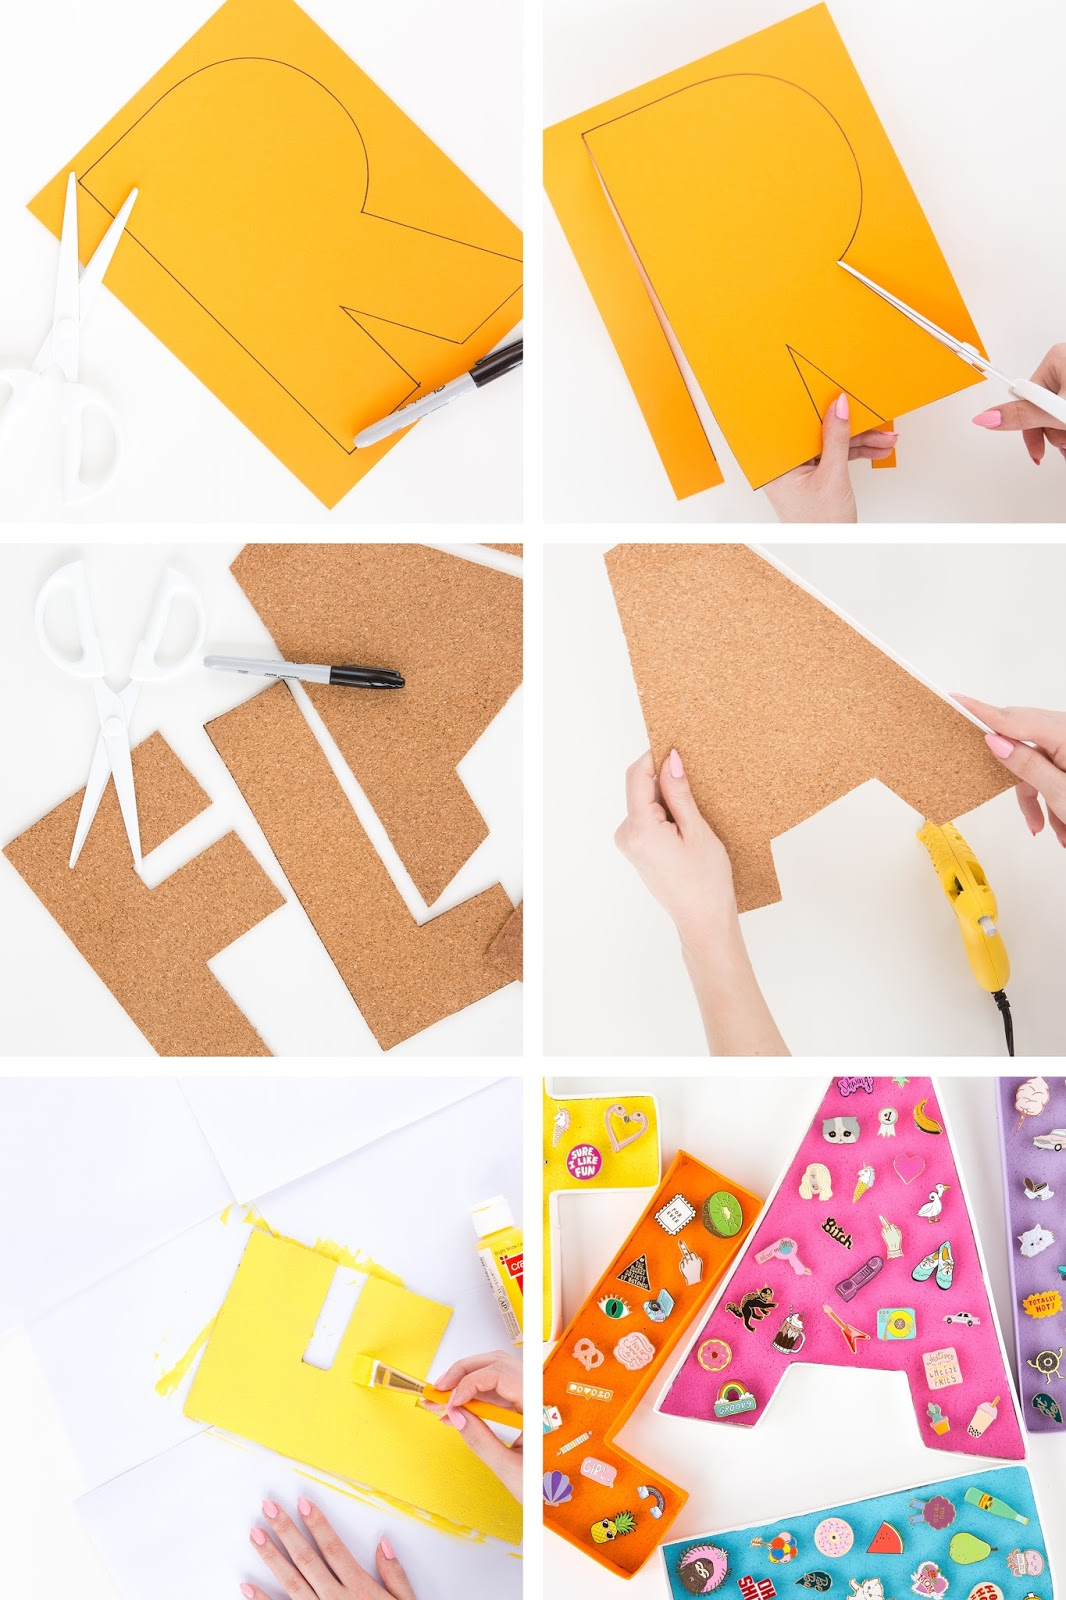 cork sheet or corkboard scissors sharpie craft paint in various colors hot glue gun illustration board paintbrush